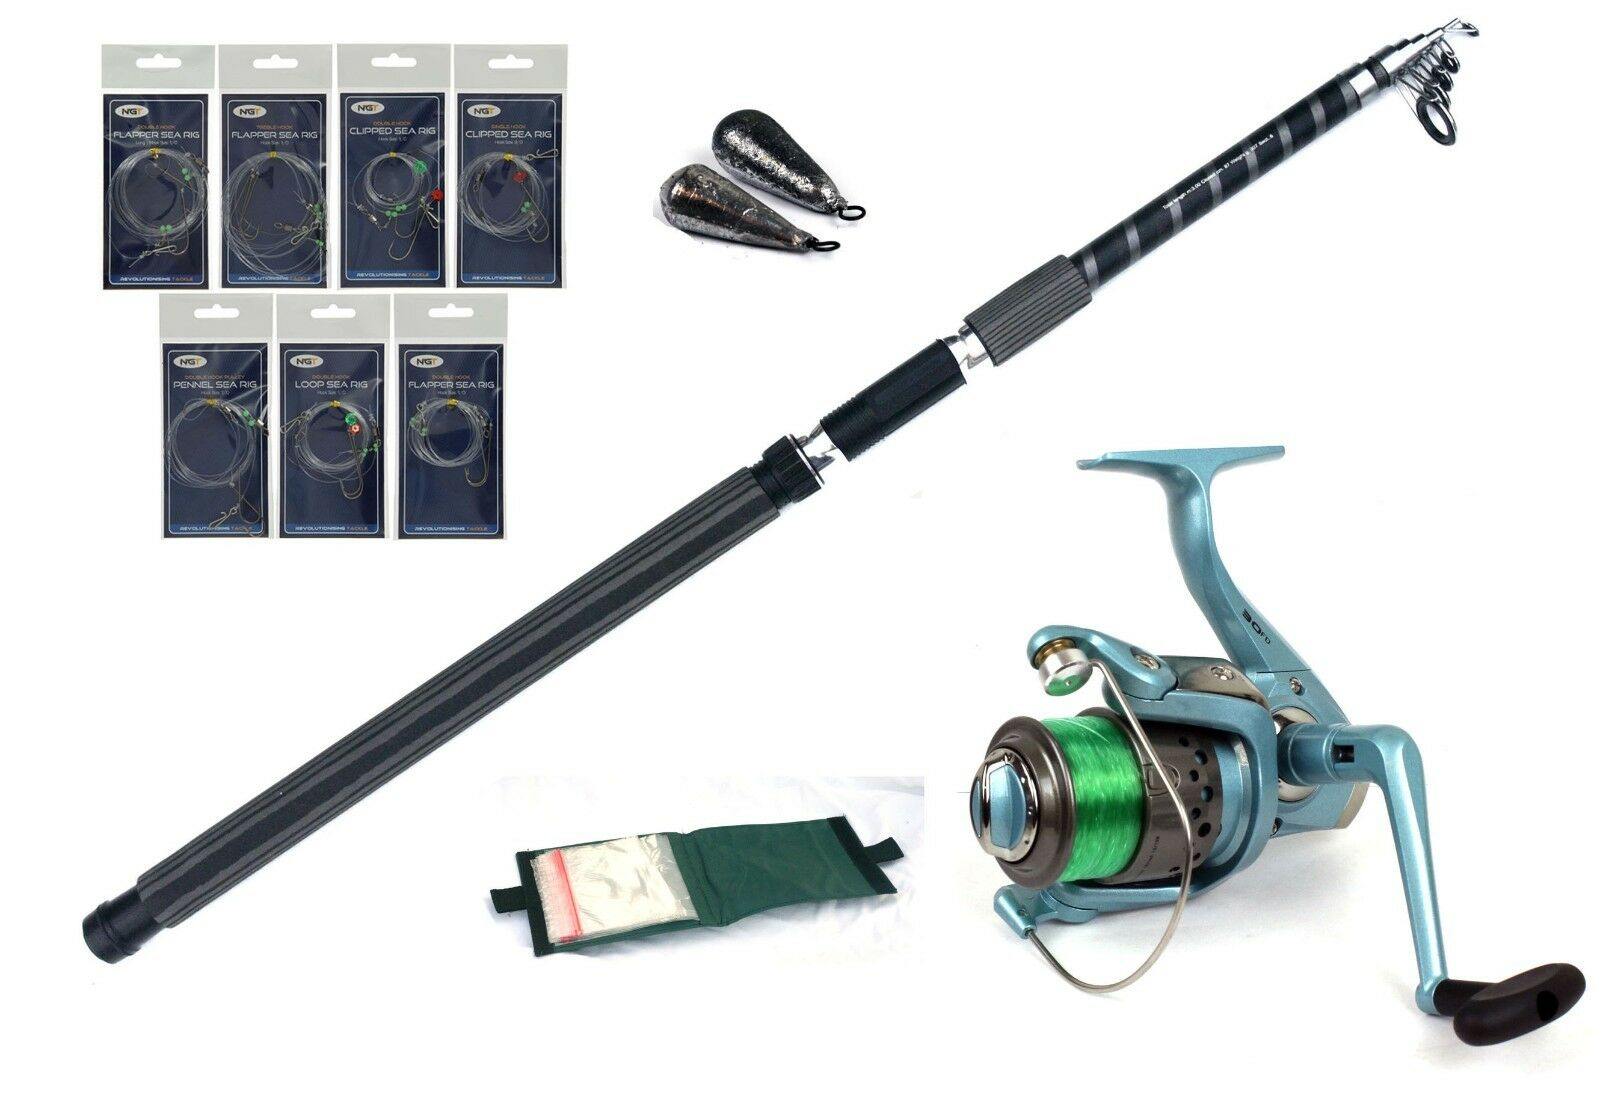 Starter Travel Sea fishing kit rod,reel,ready rigs,leads,line rig wallet